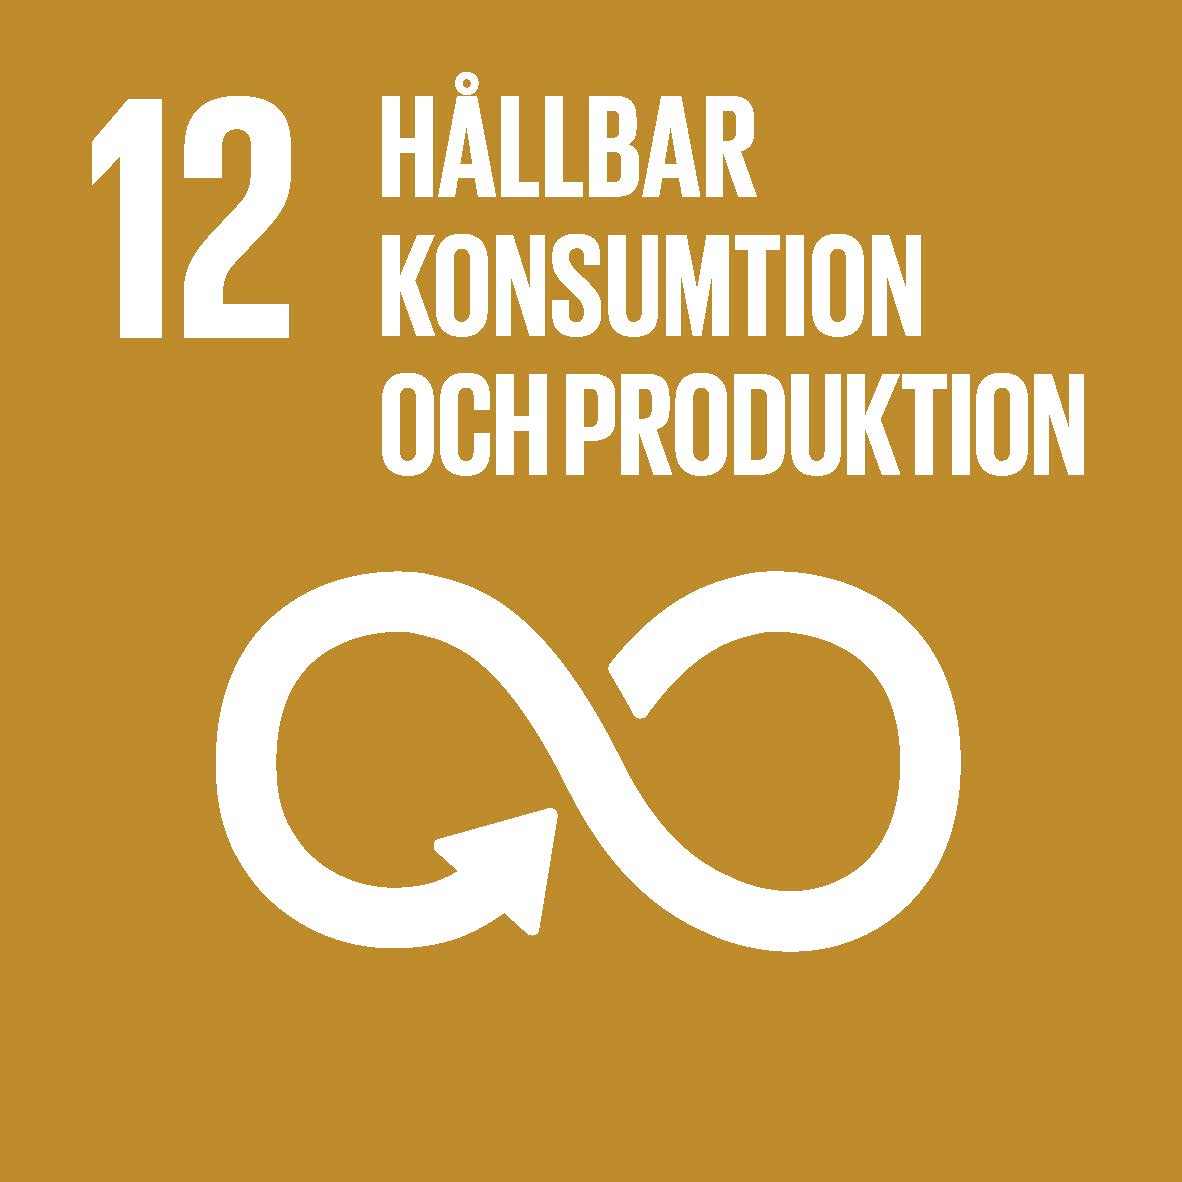 Sustainable_Development_Goals_icons-12